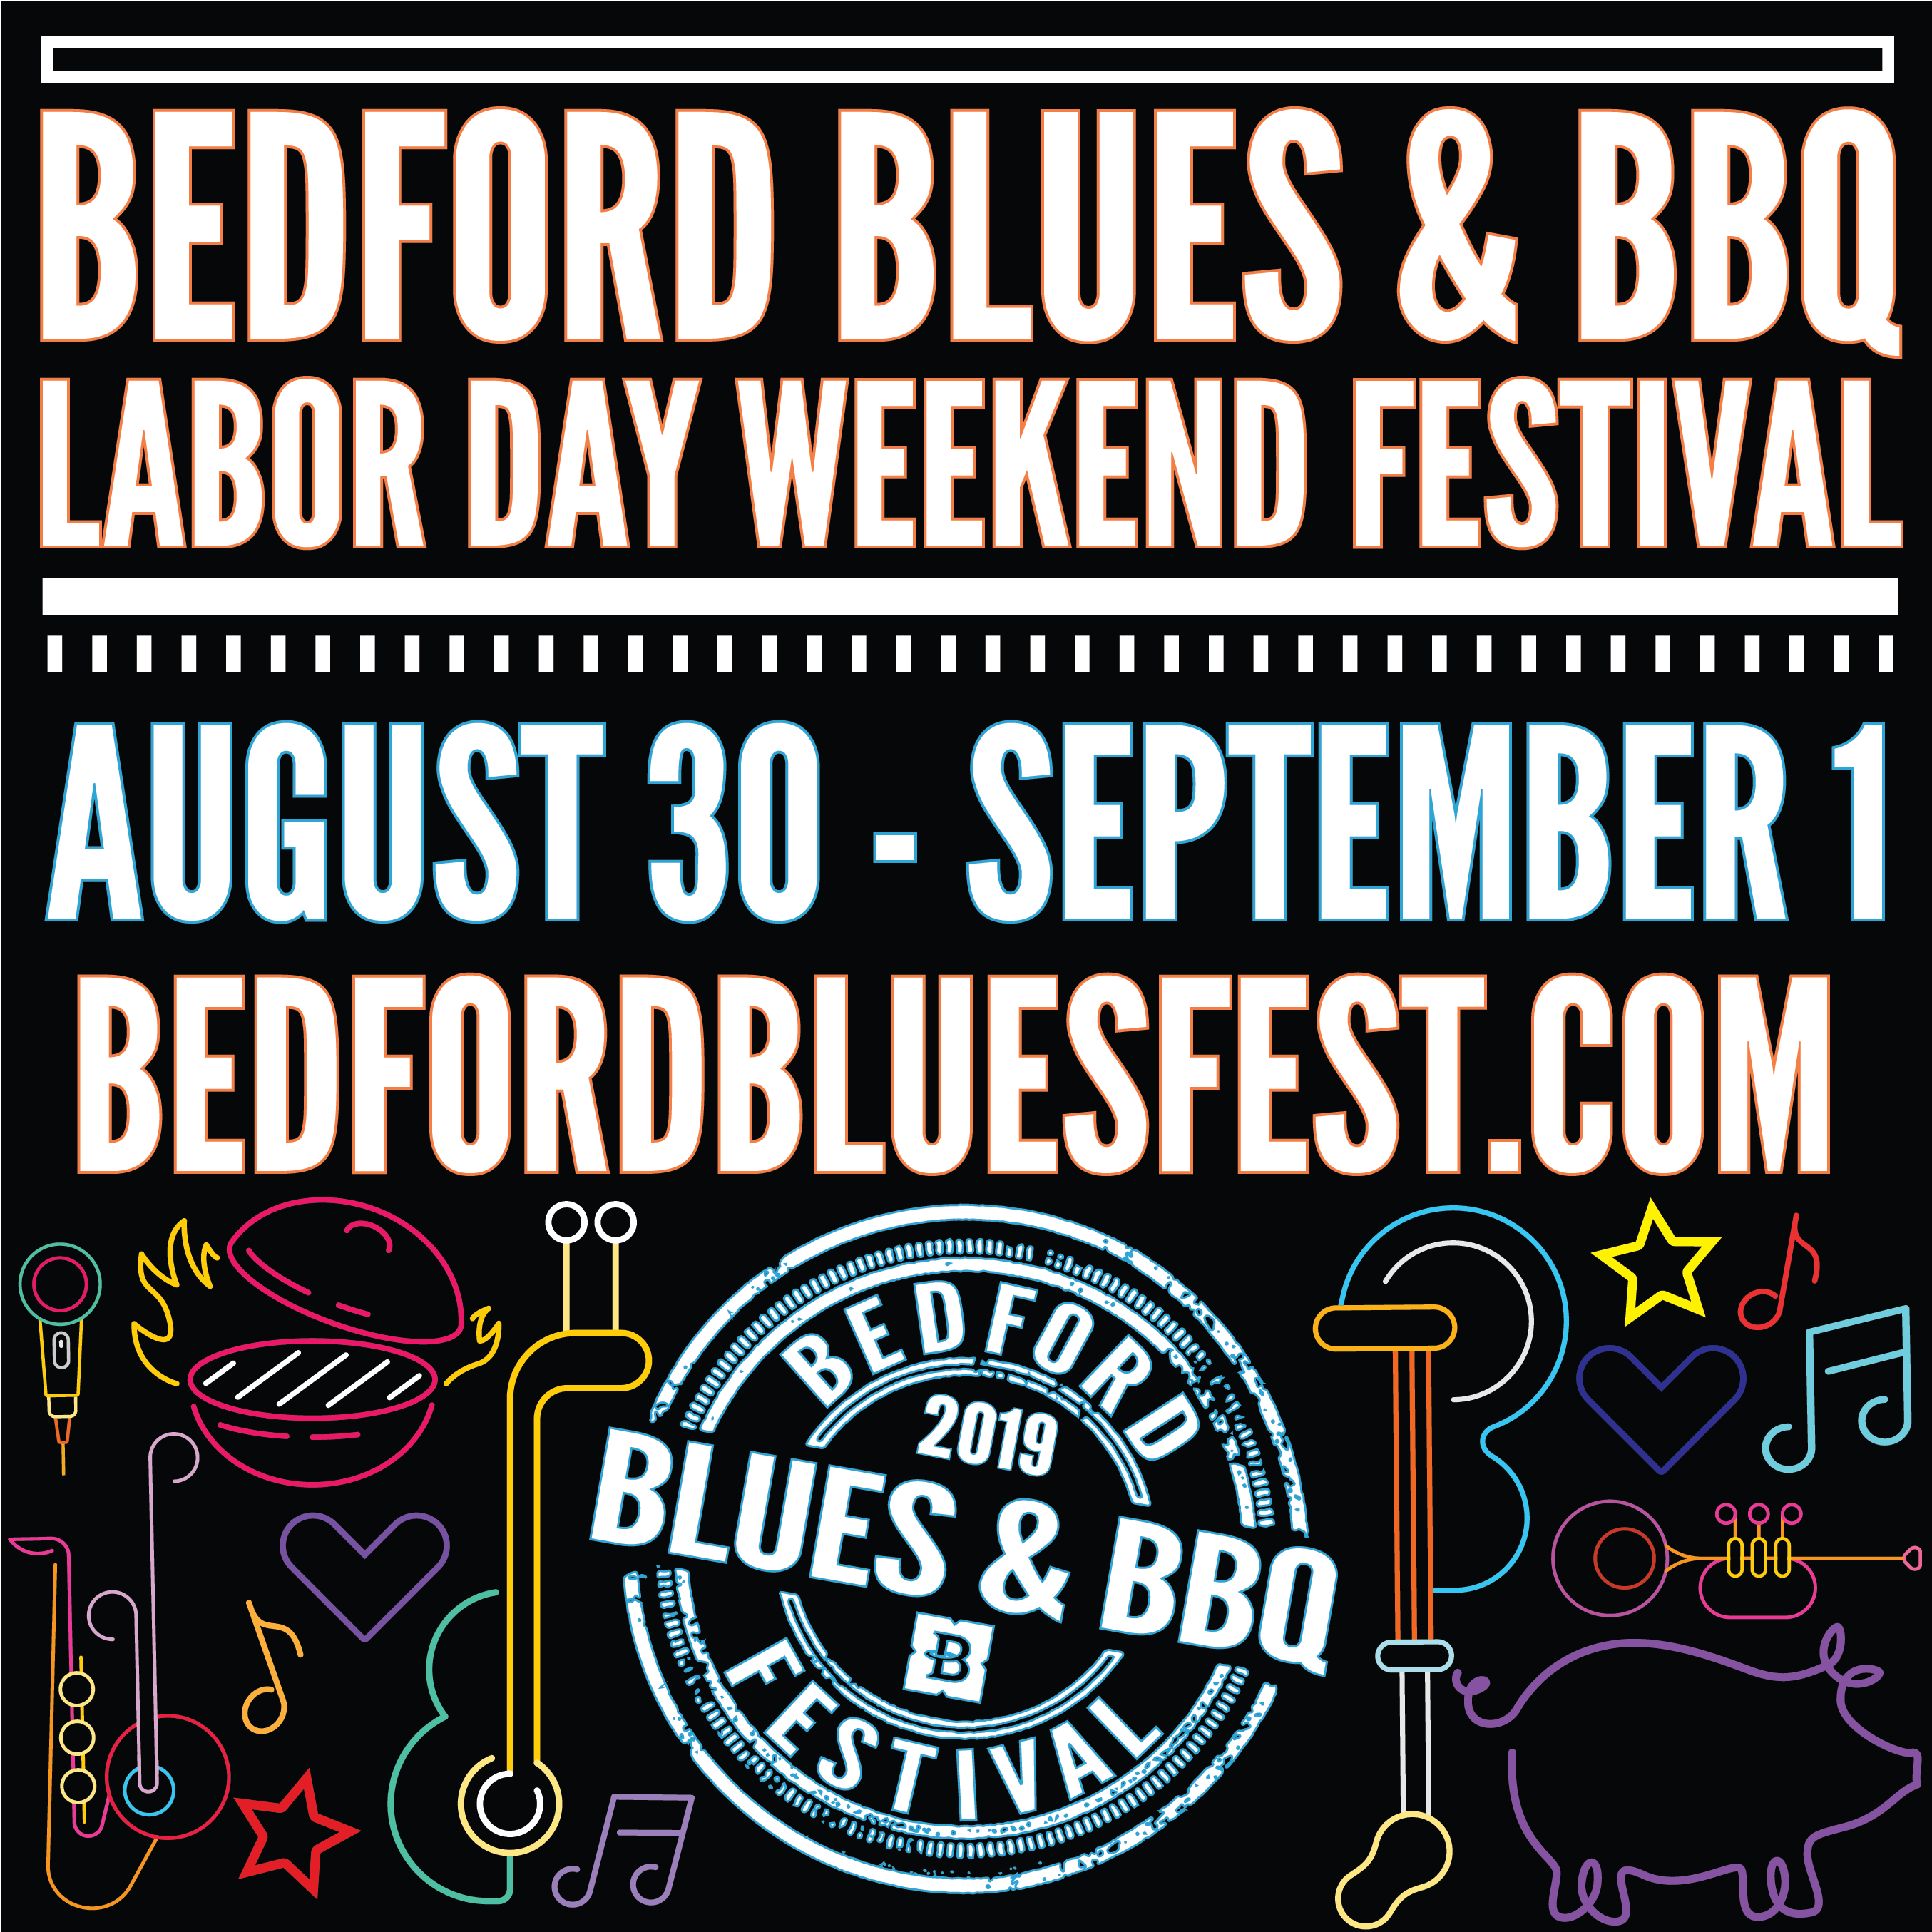 Enter for your chance to win a pair of VIP tickets to the Bedford Blues and BBQ Festival over Labor Day Weekend!